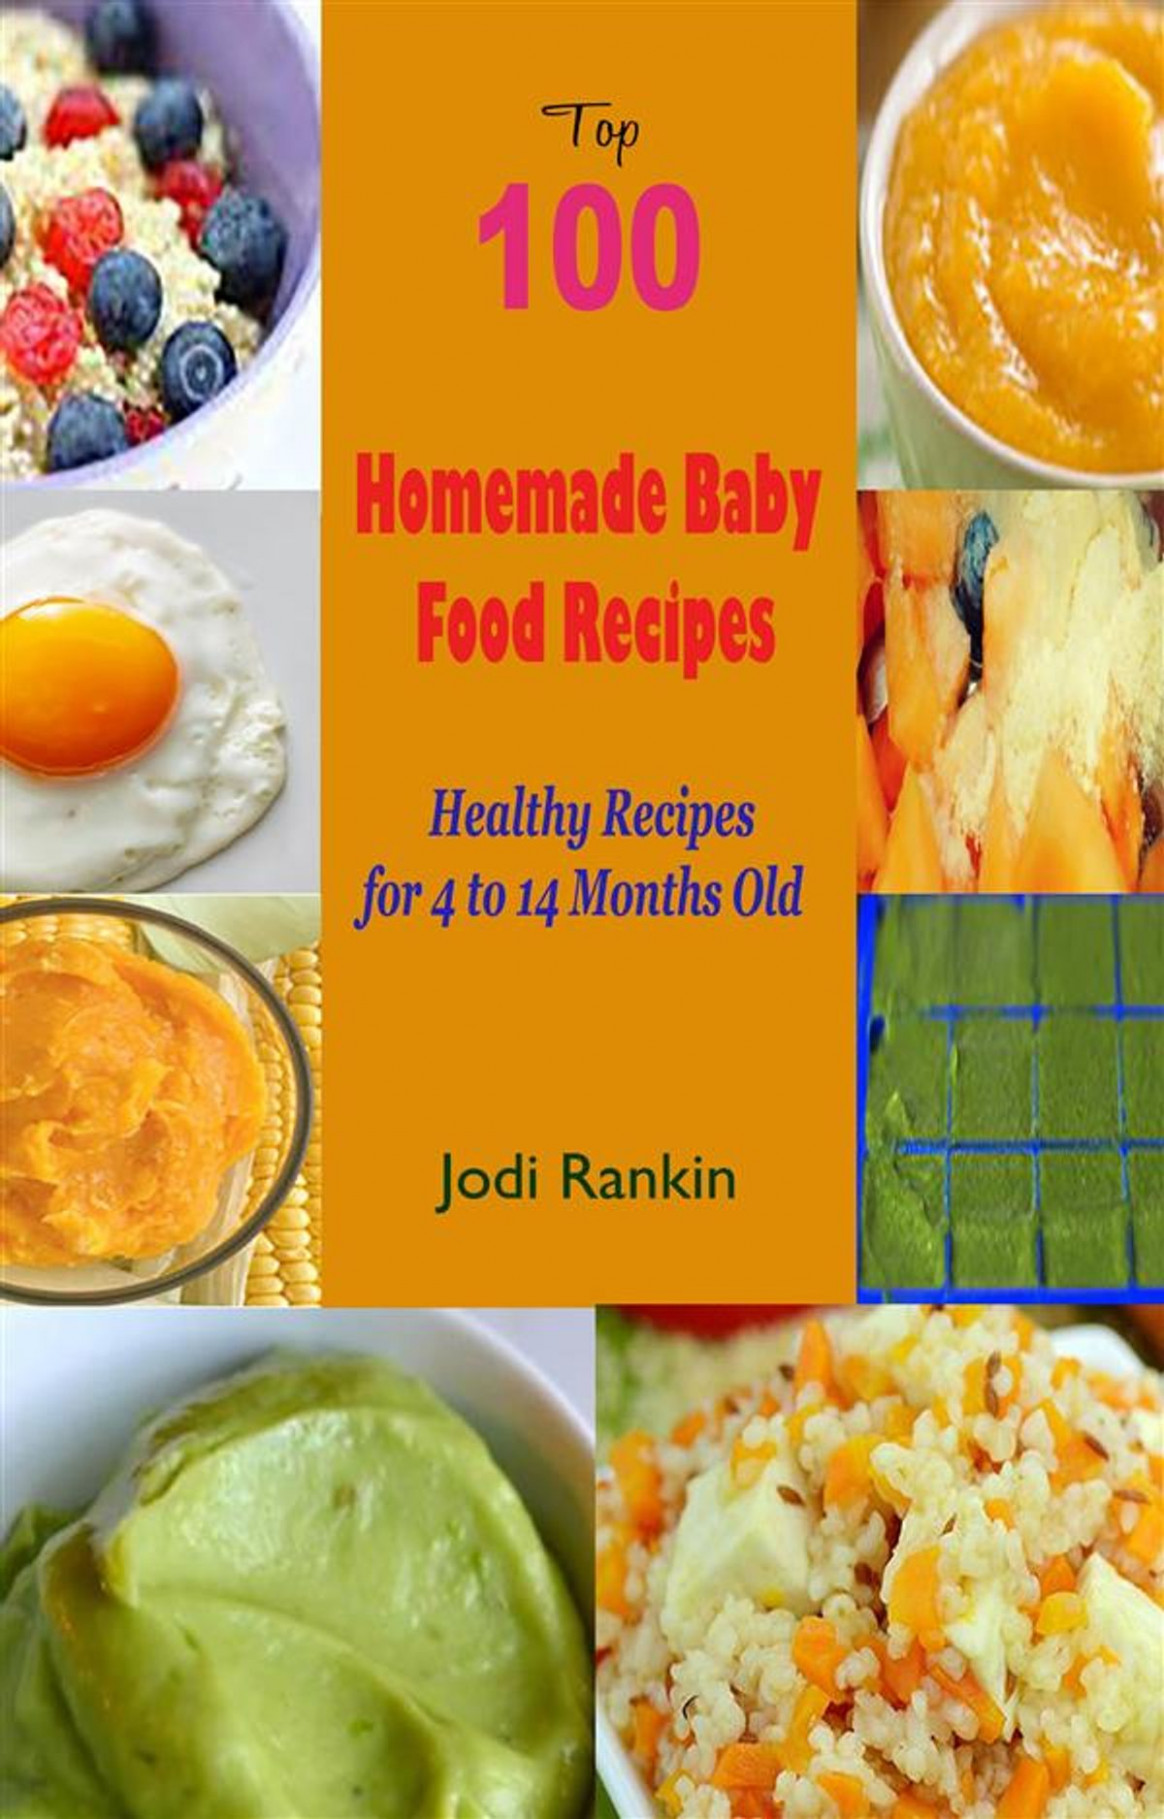 14 Month Old Baby Food - healthy food recipes to gain weight - homemade baby food recipes 6-9 months